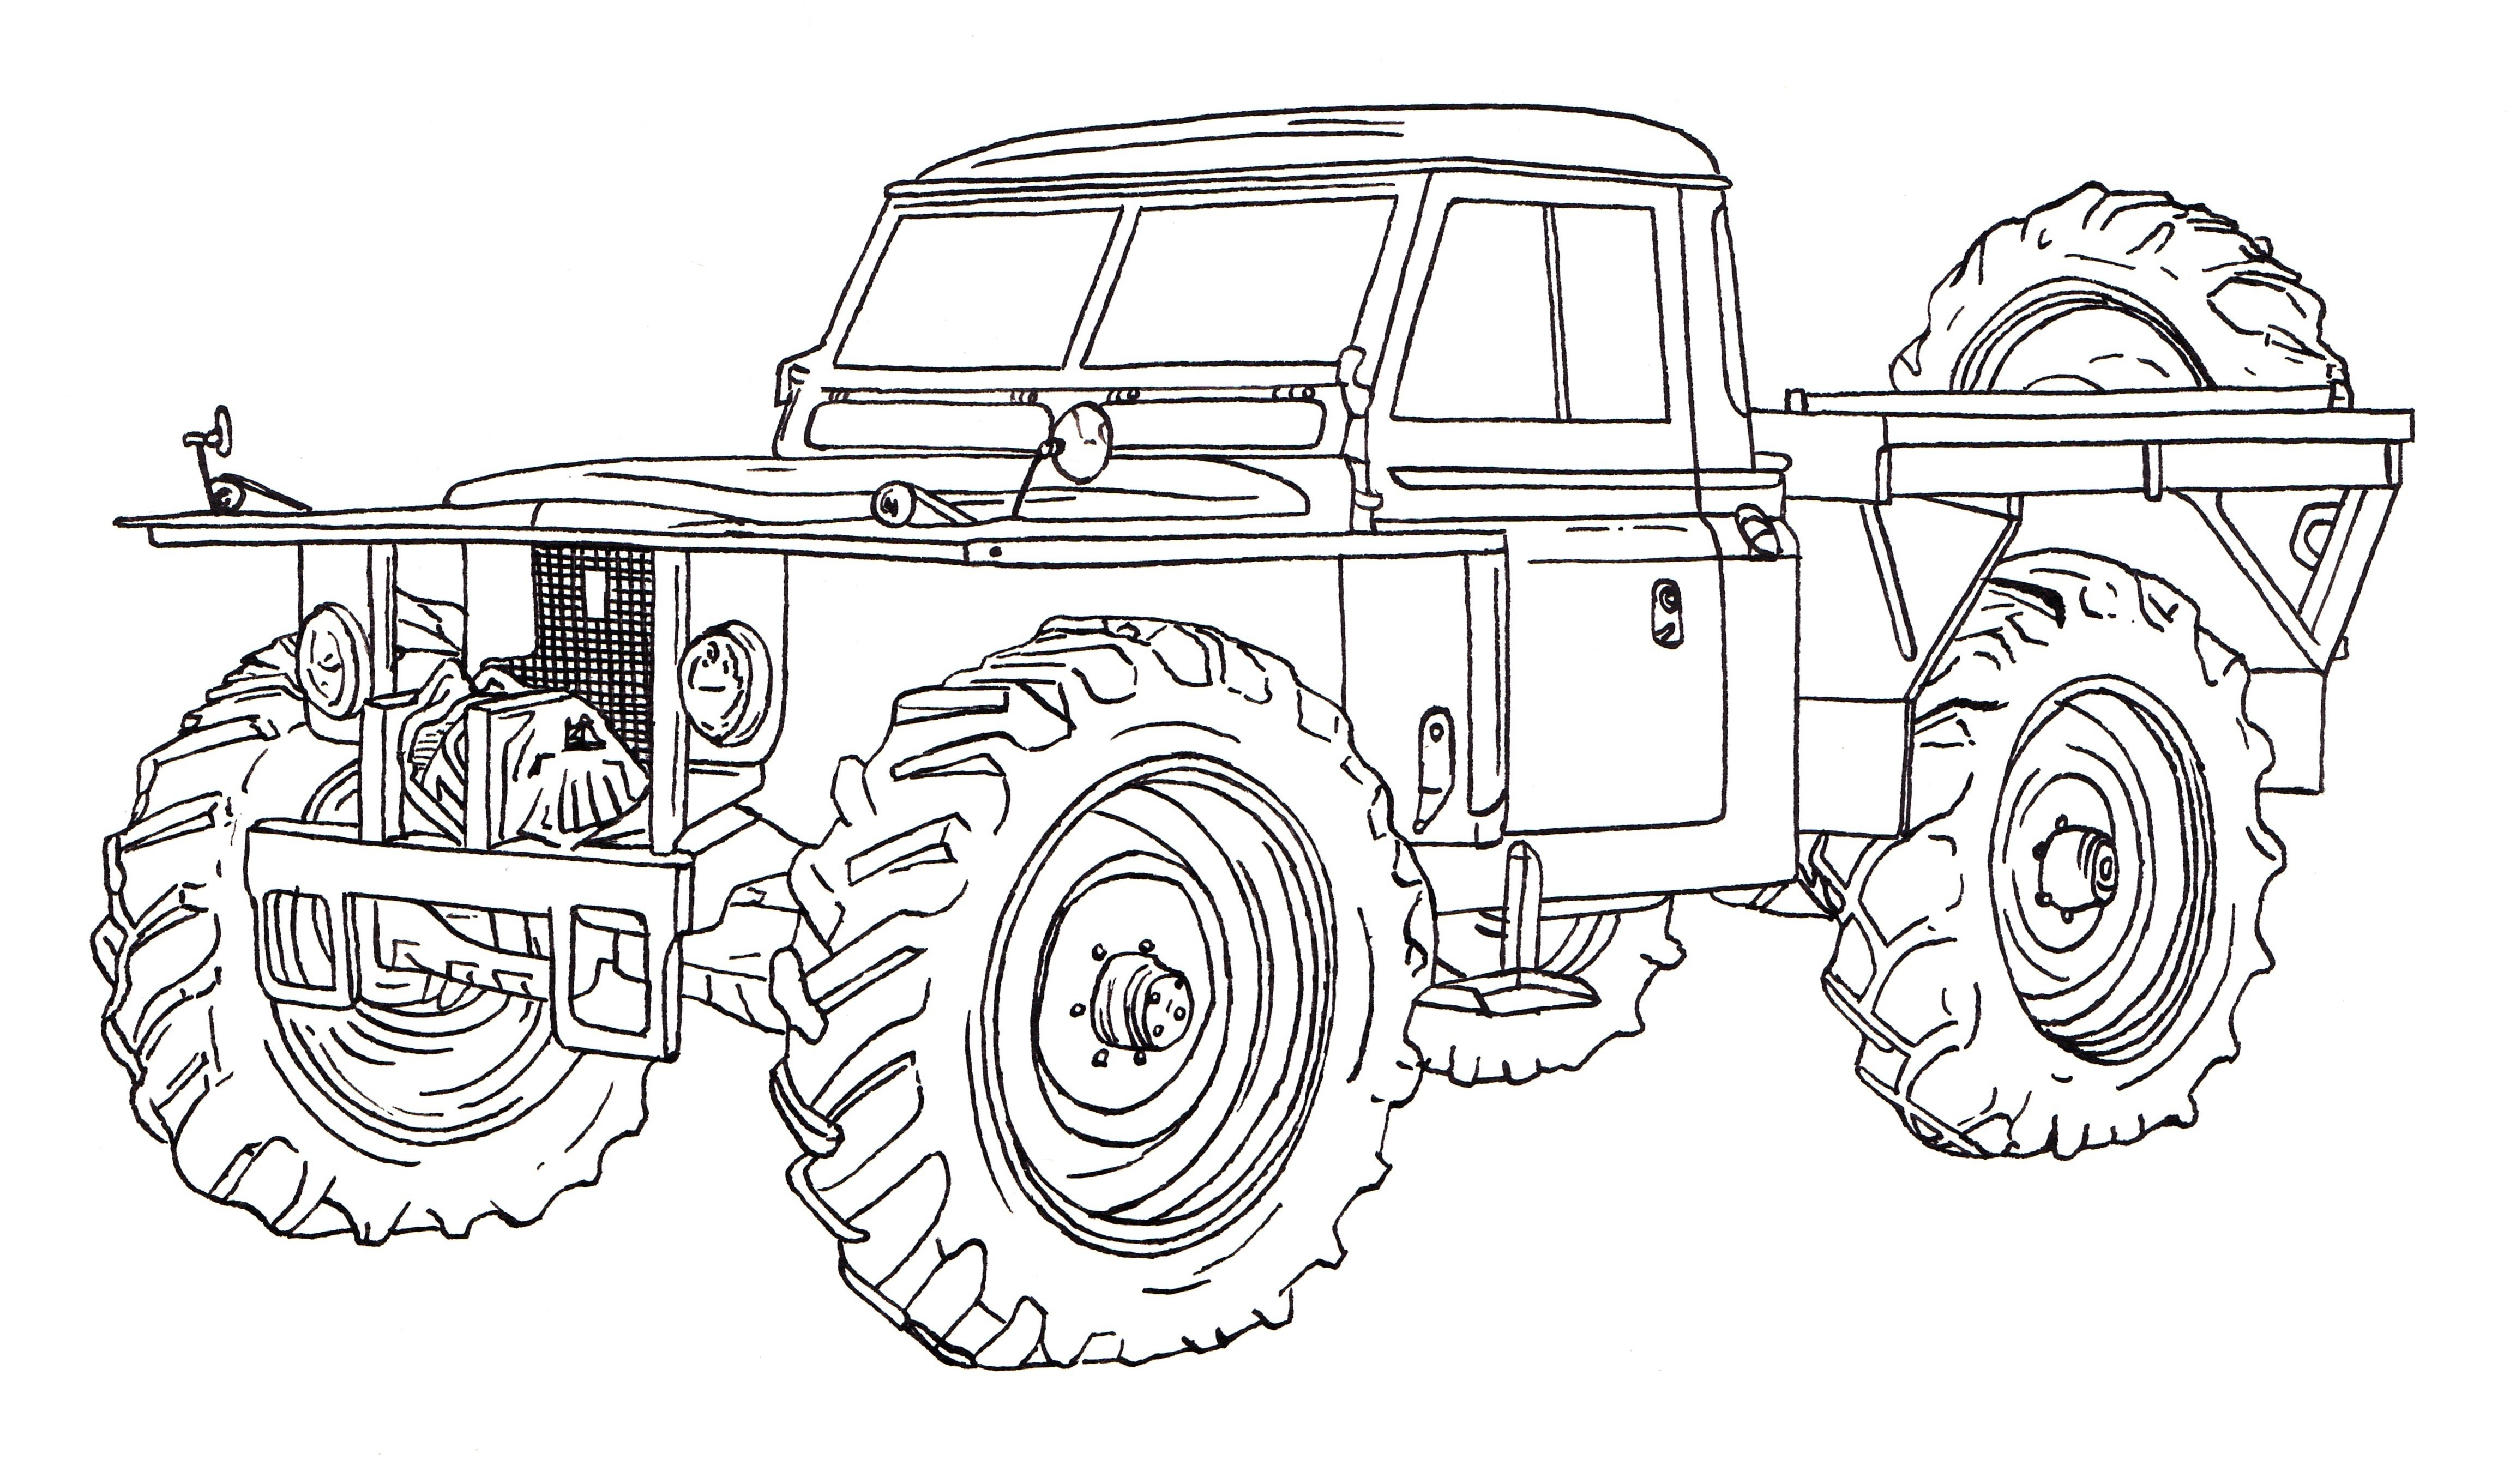 Super Car Land Rover Defender Coloring Page for Kids Best Land Download Of Going Back where We Started An African Road Trip 2005 Gallery